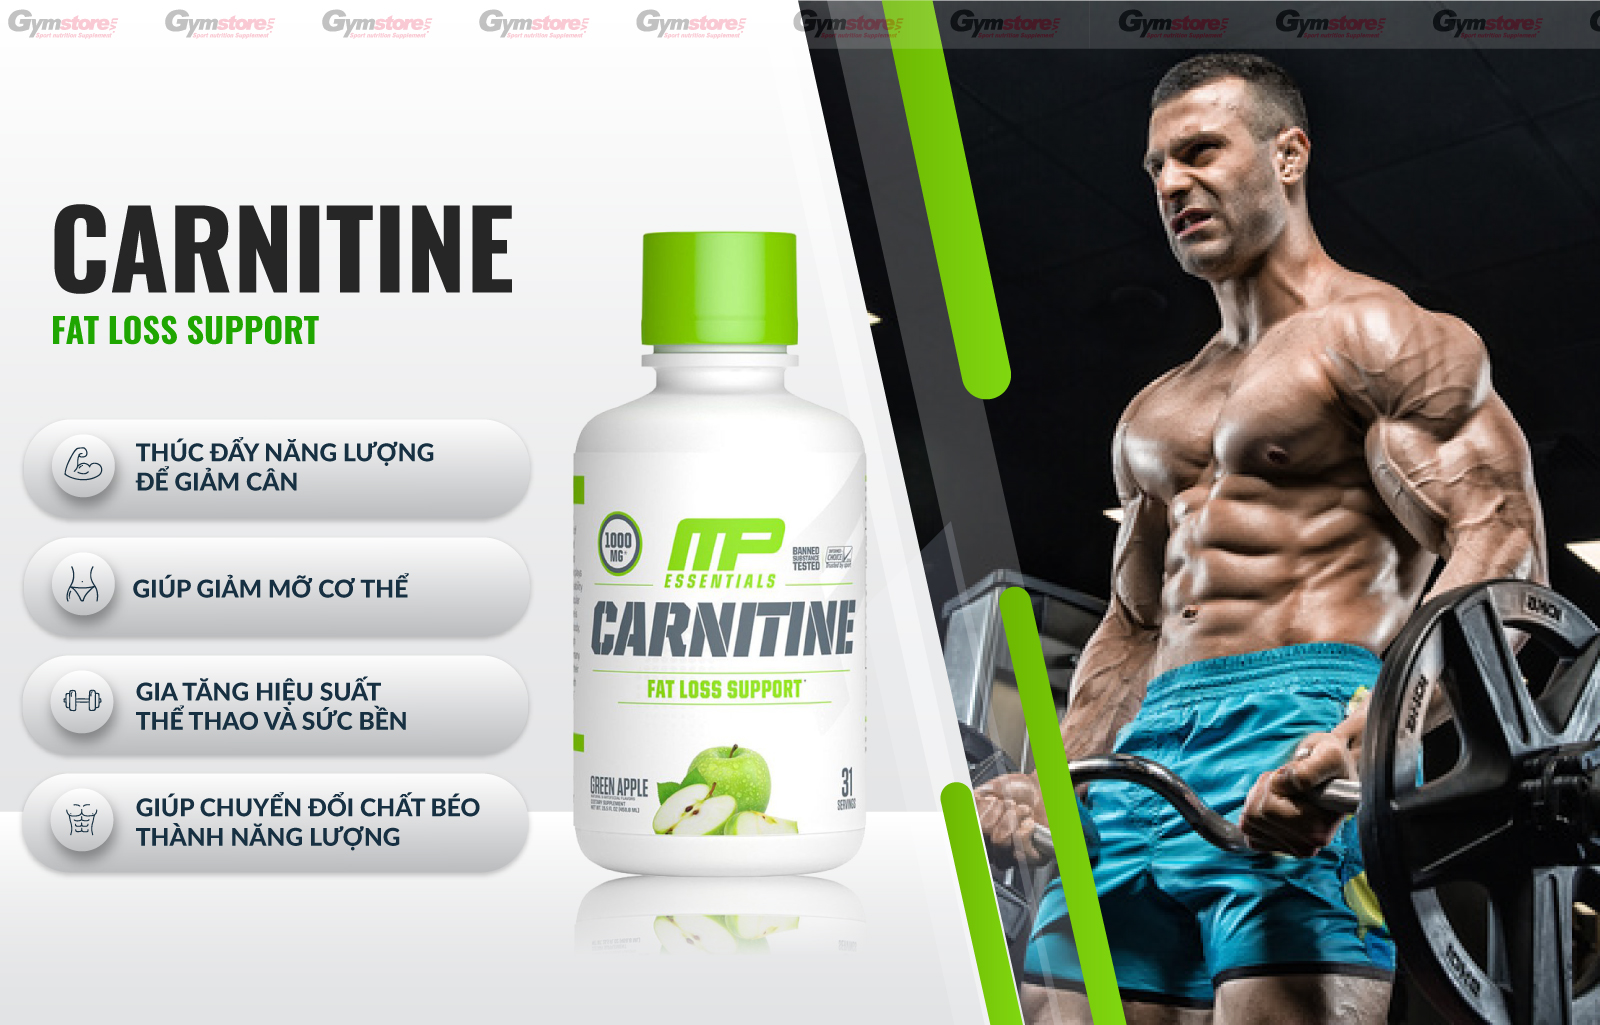 MUSCLEPHARM-ESSENTIALS-CARNITINE-LIQUID-GYMSTORE